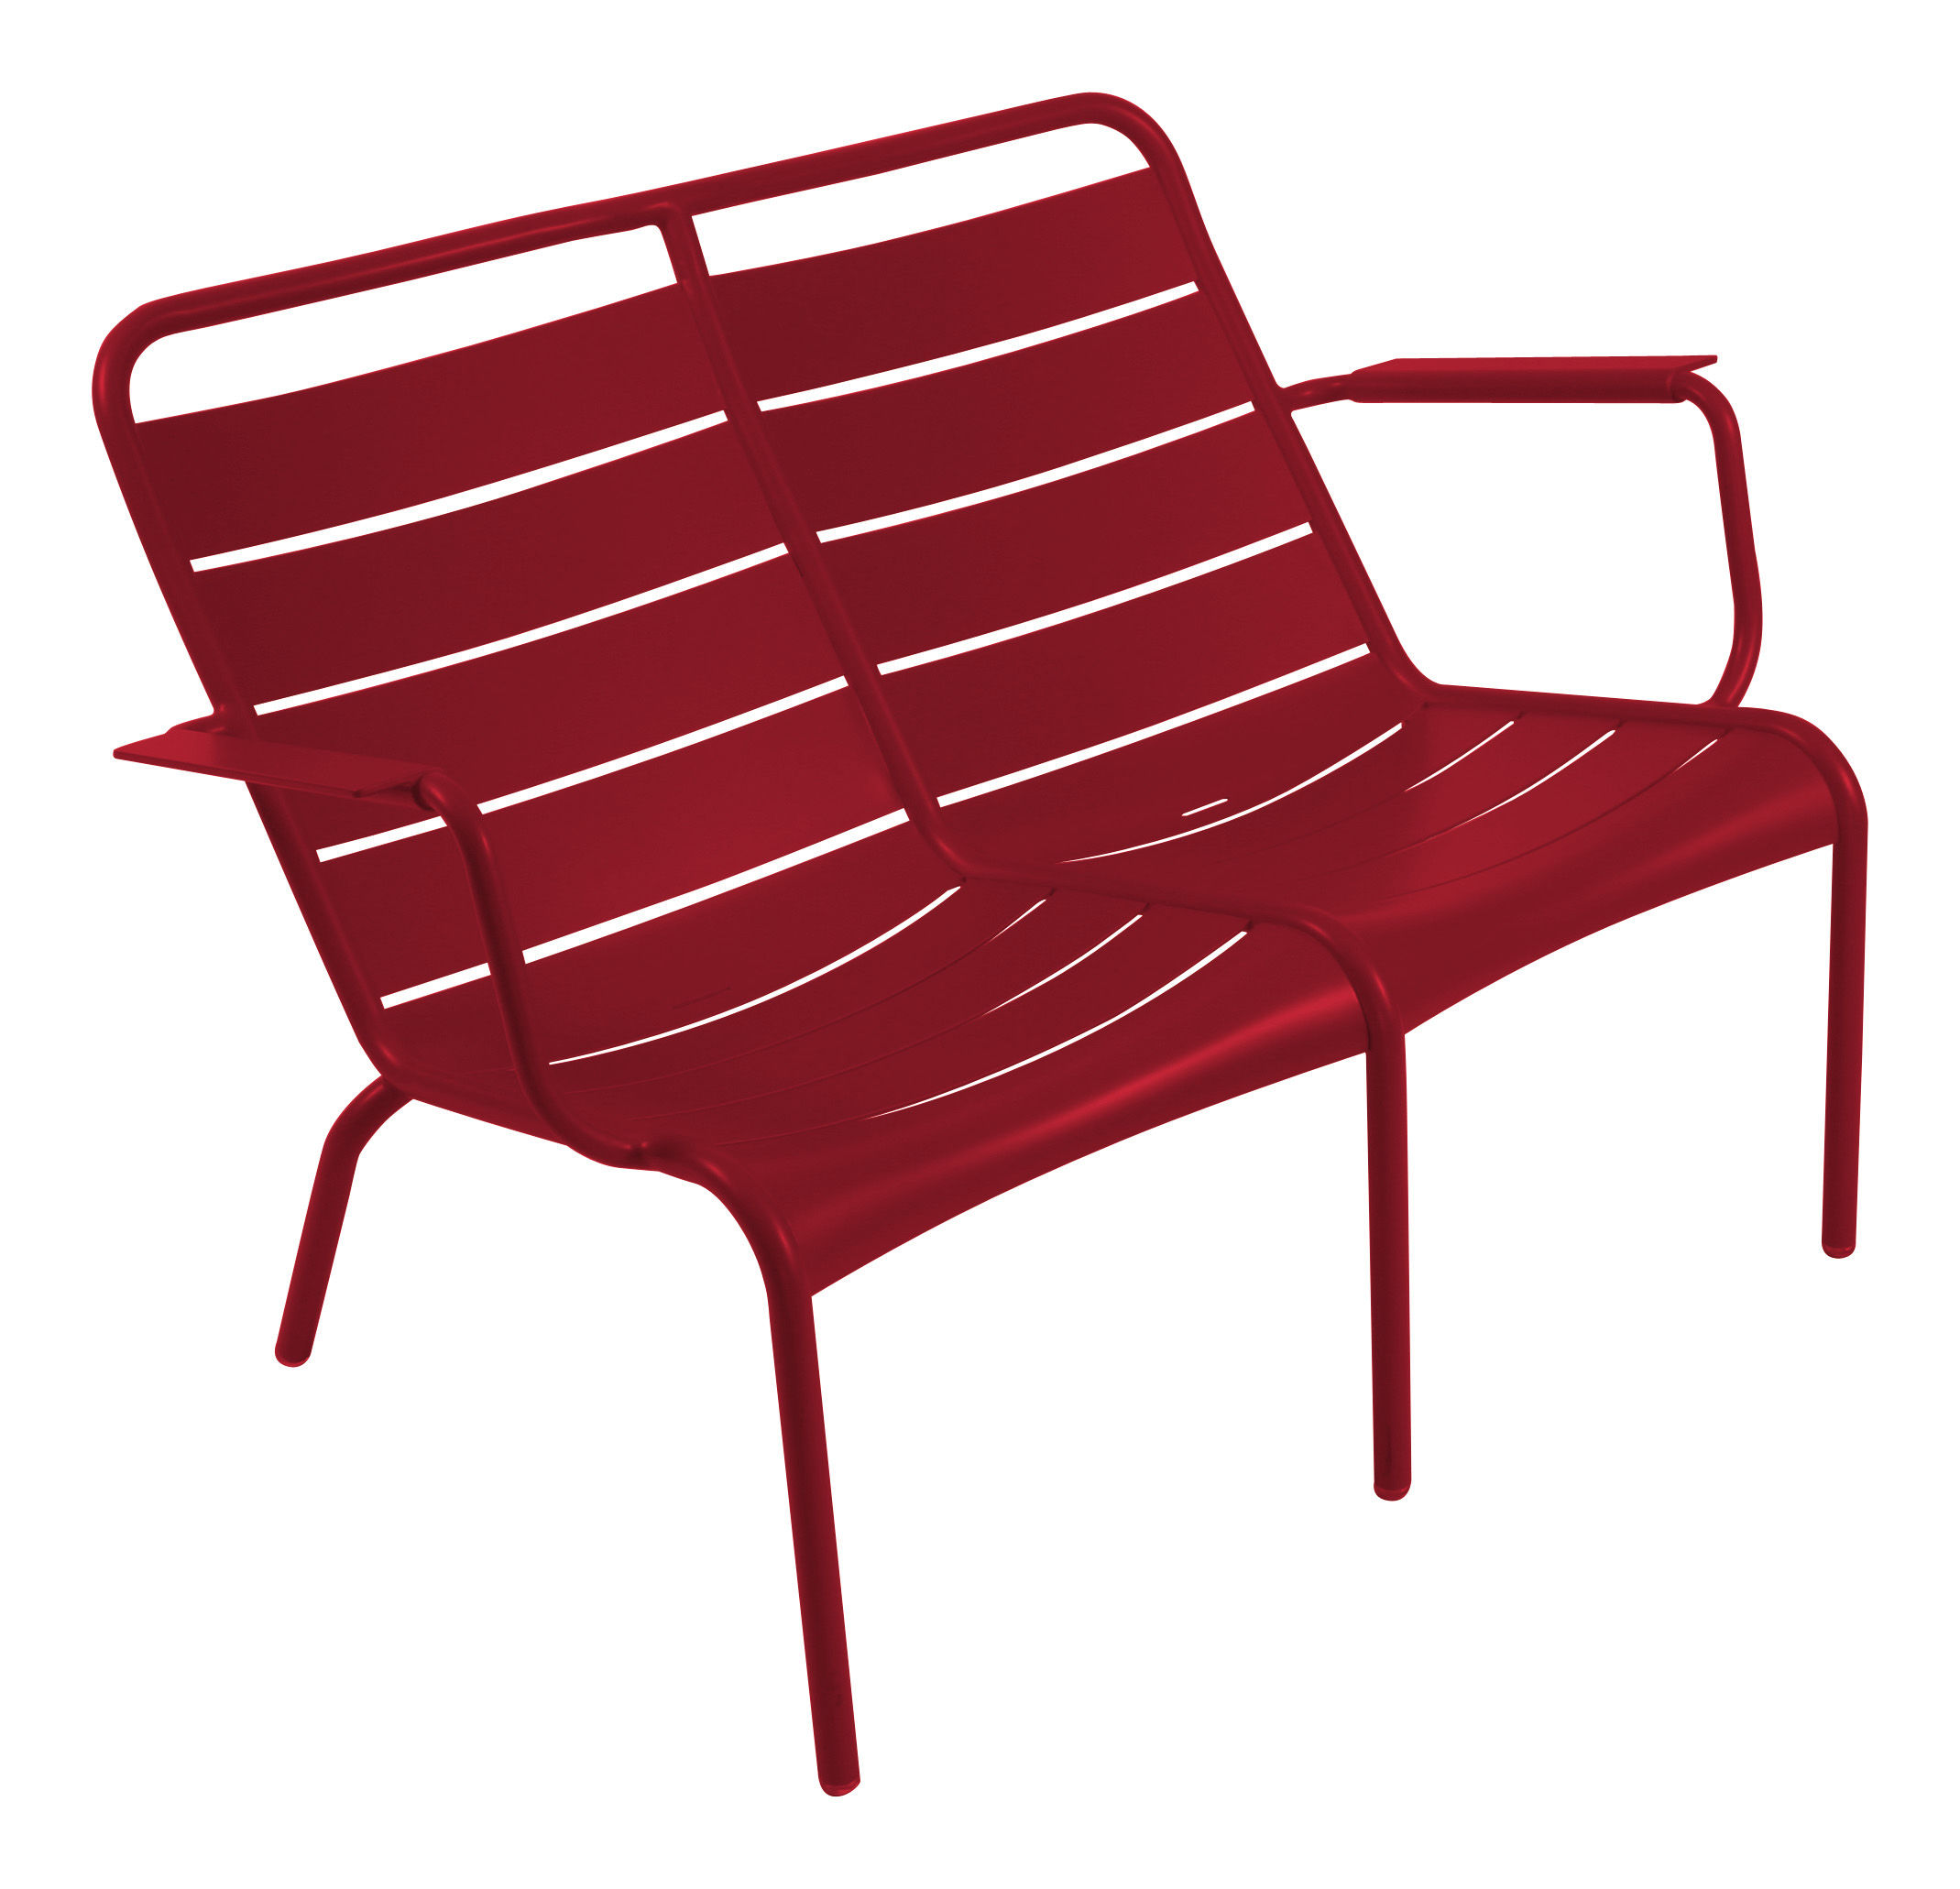 Life Style - Luxembourg Duo Bench with backrest - 2 seaters by Fermob - Chili - Aluminium